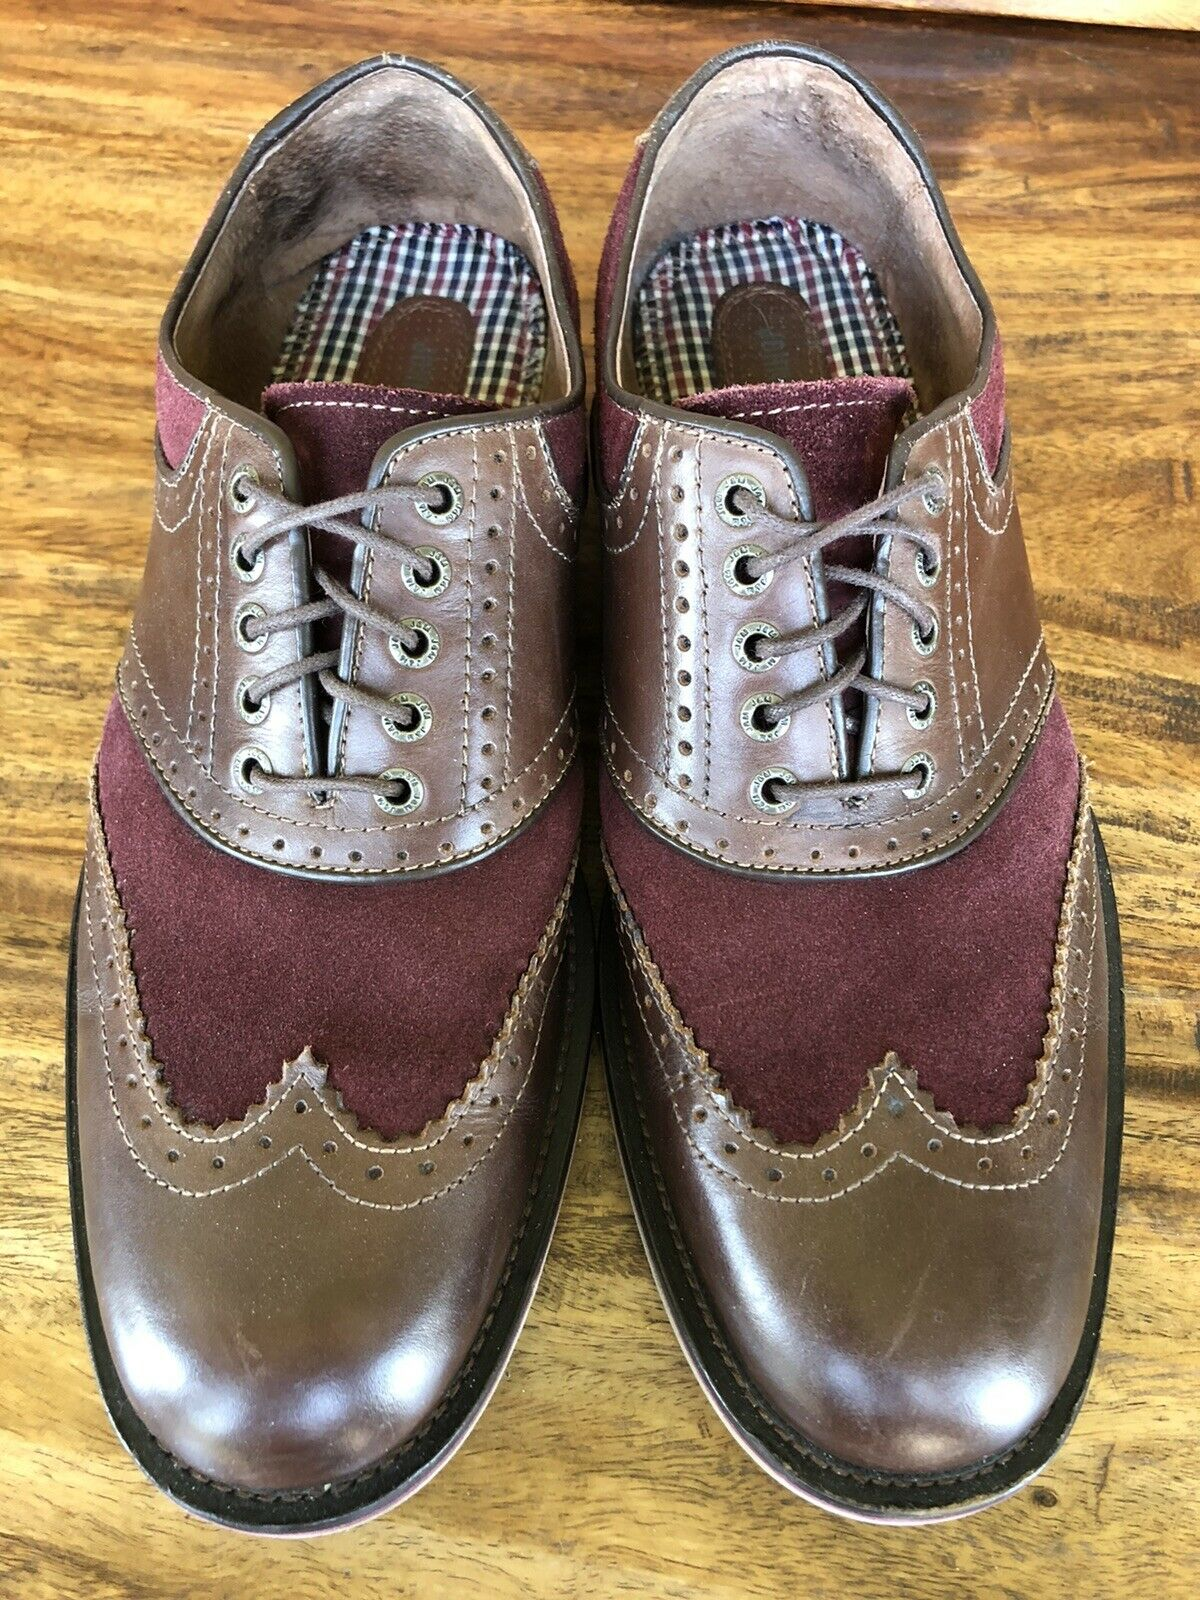 Men's Johnston & Murphy Casual Shoes Brown Burgundy Leather Size 10.5